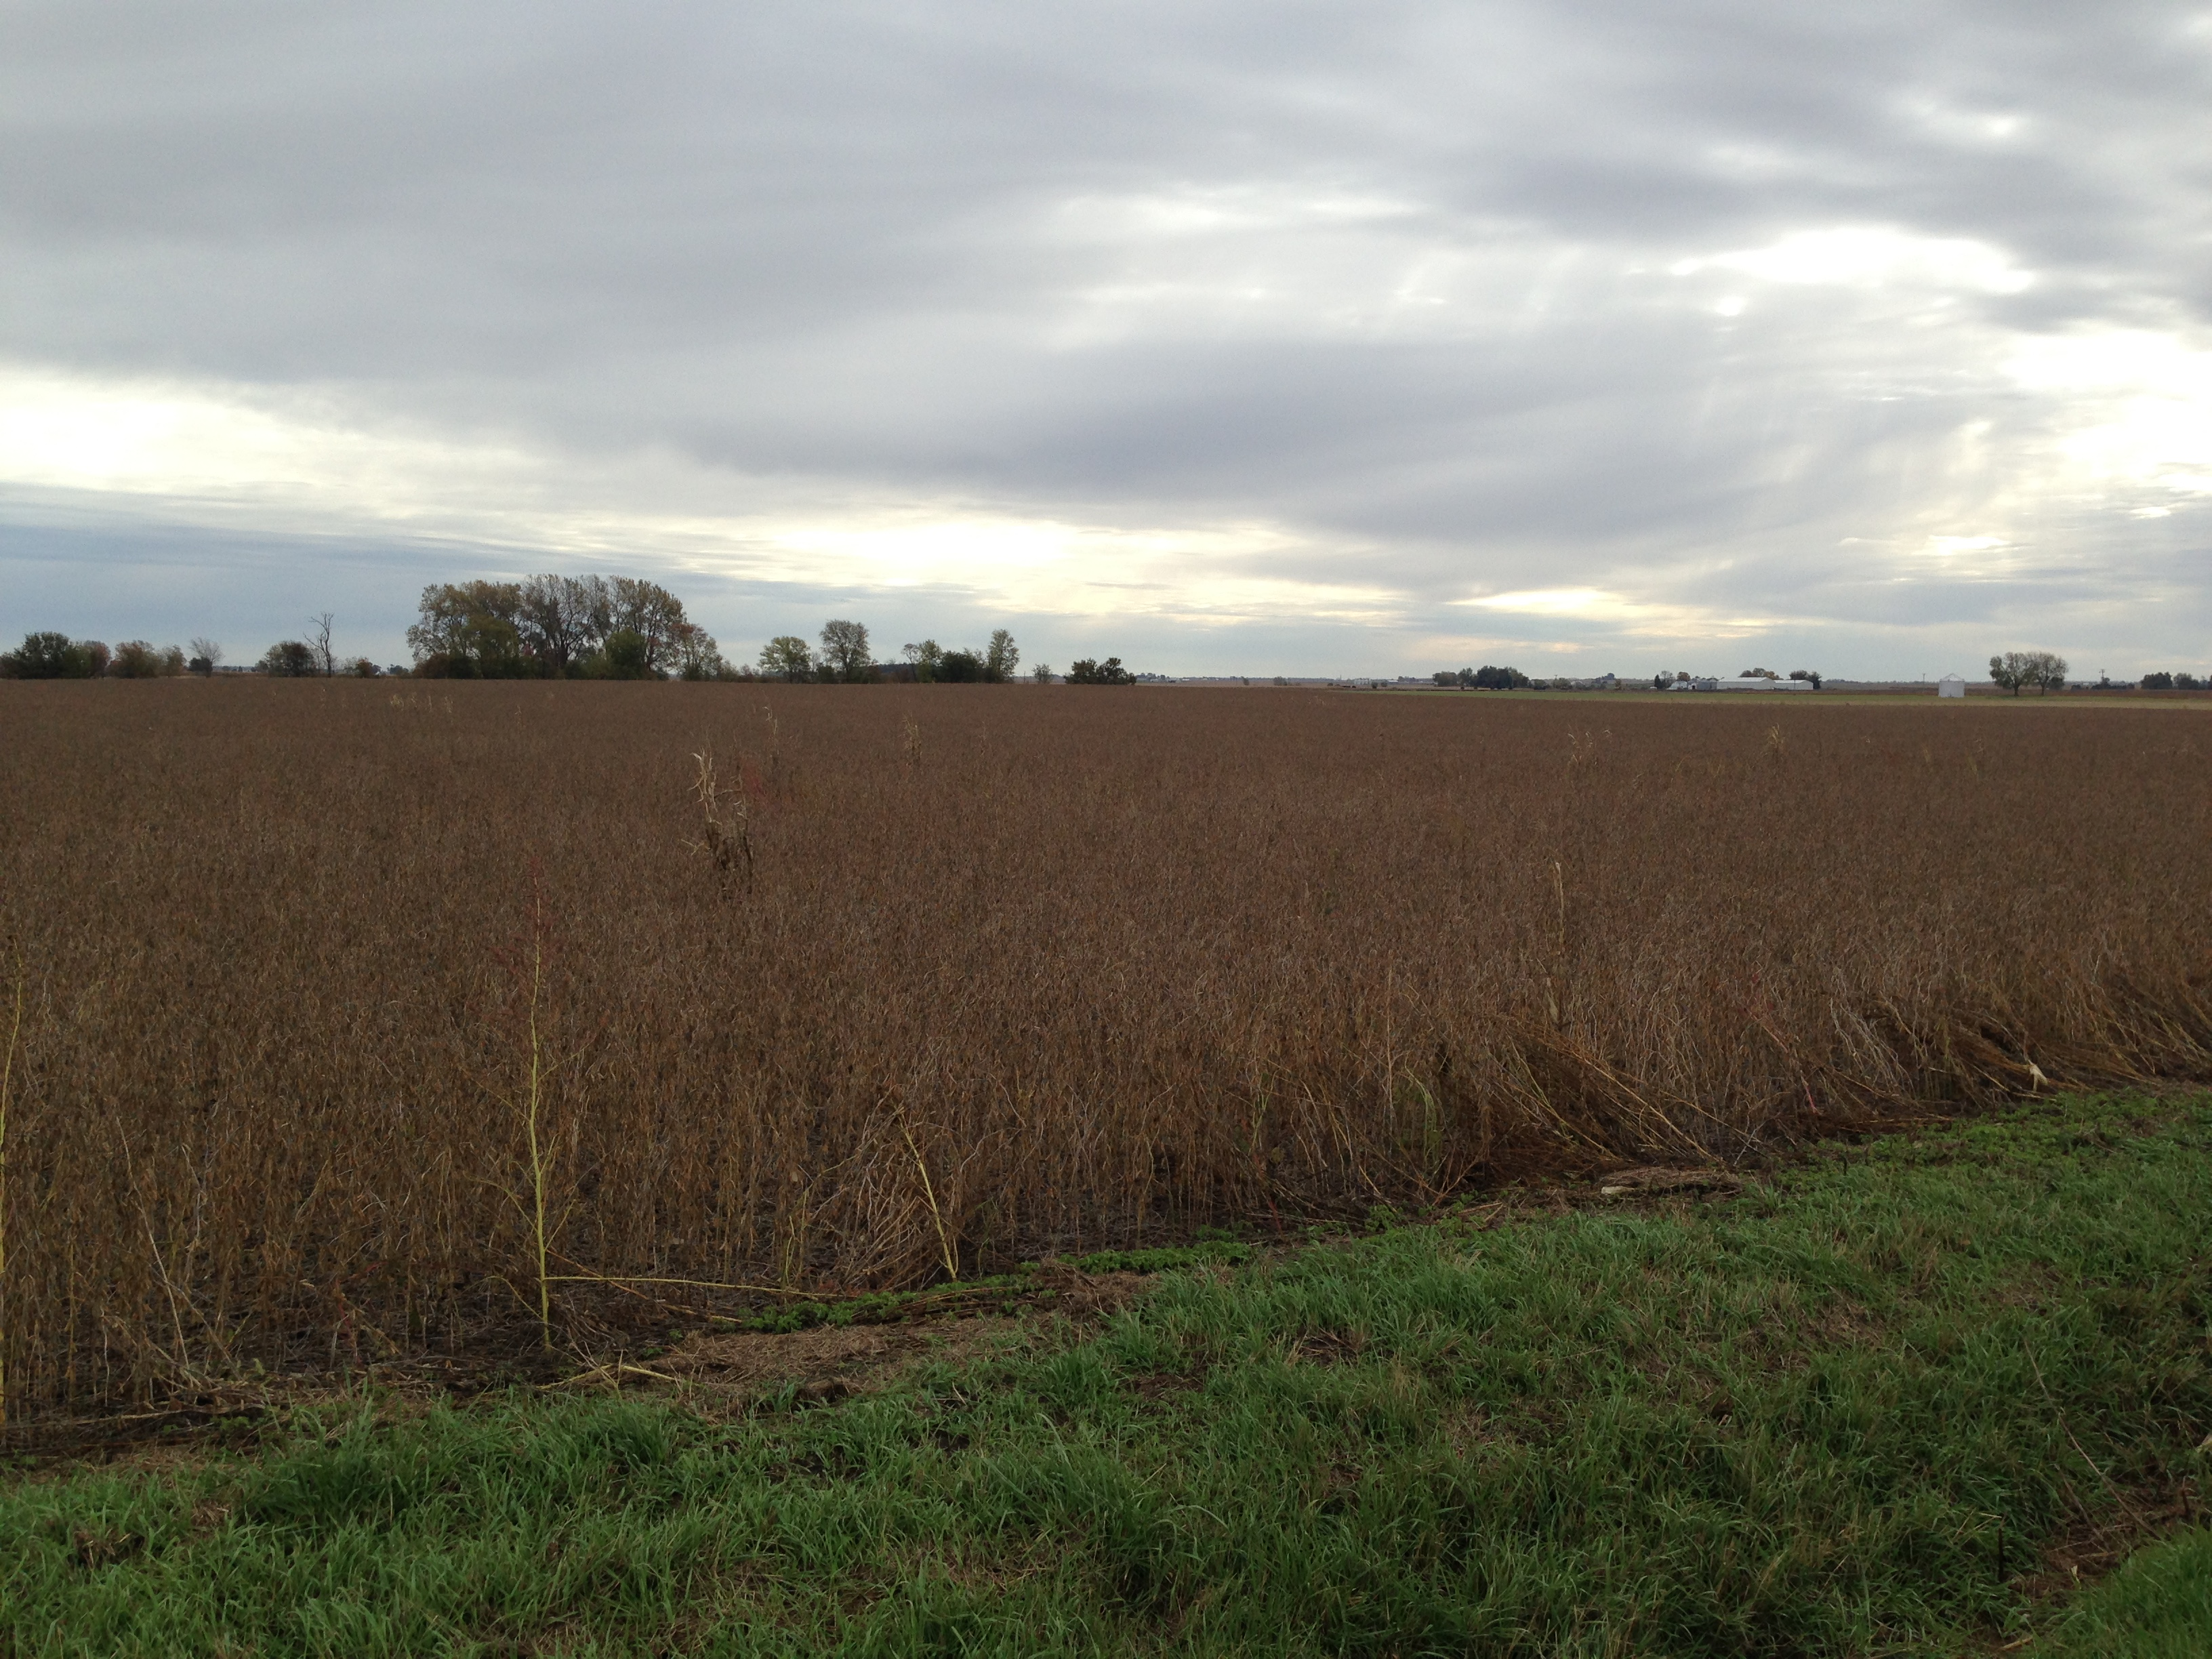 Beans to be harvested